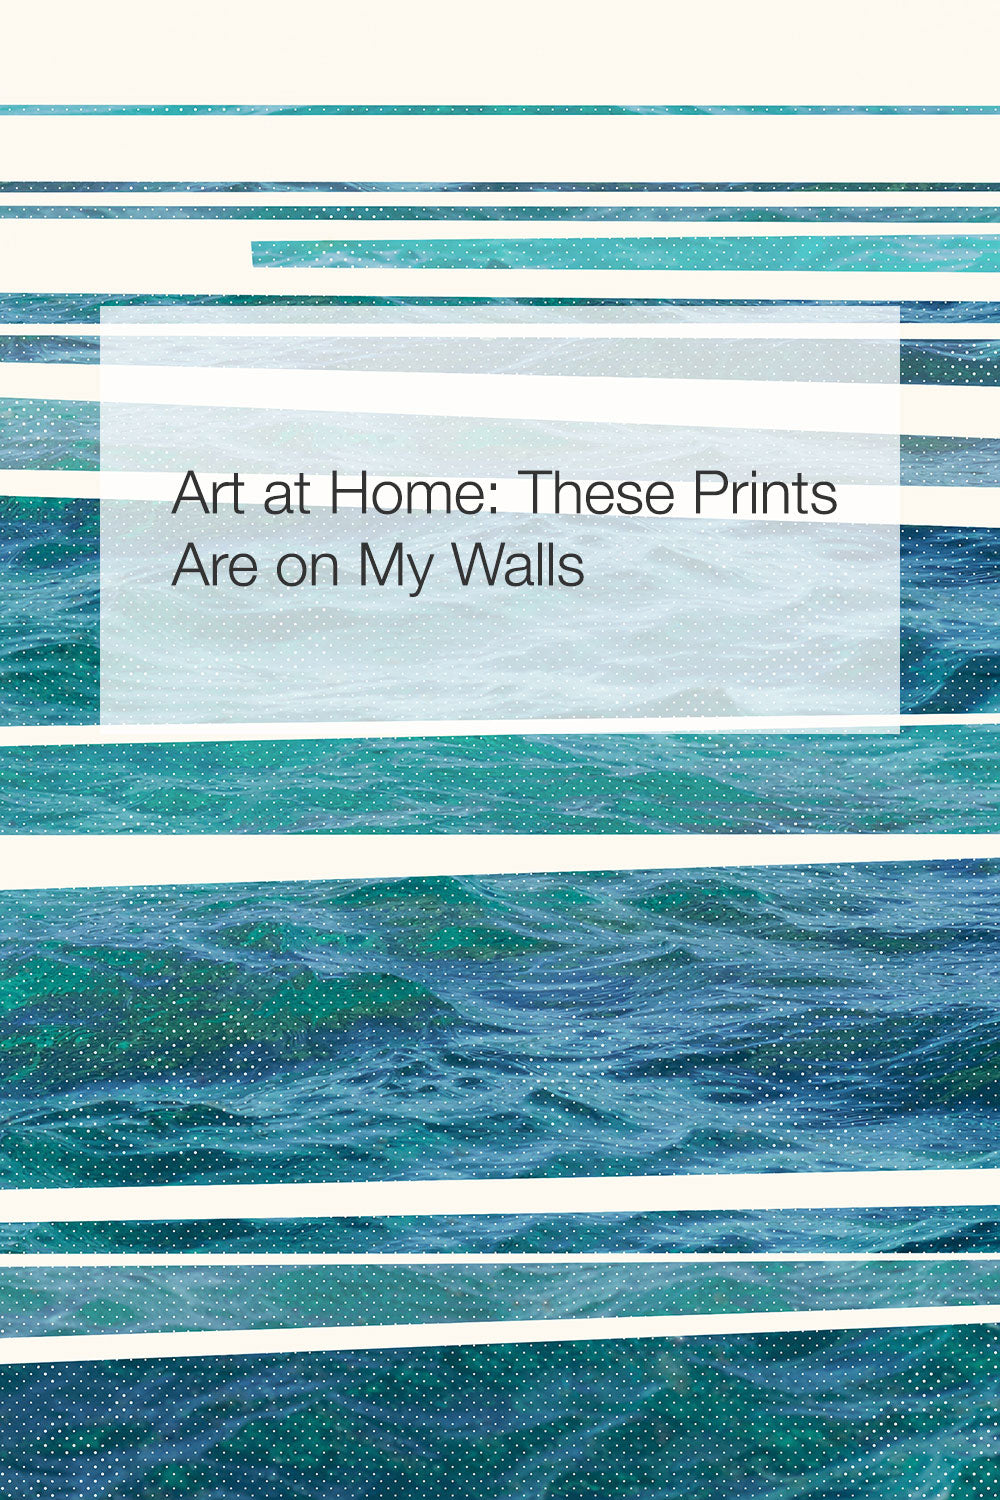 Art at Home Limited Edition Fine Art Print Collection